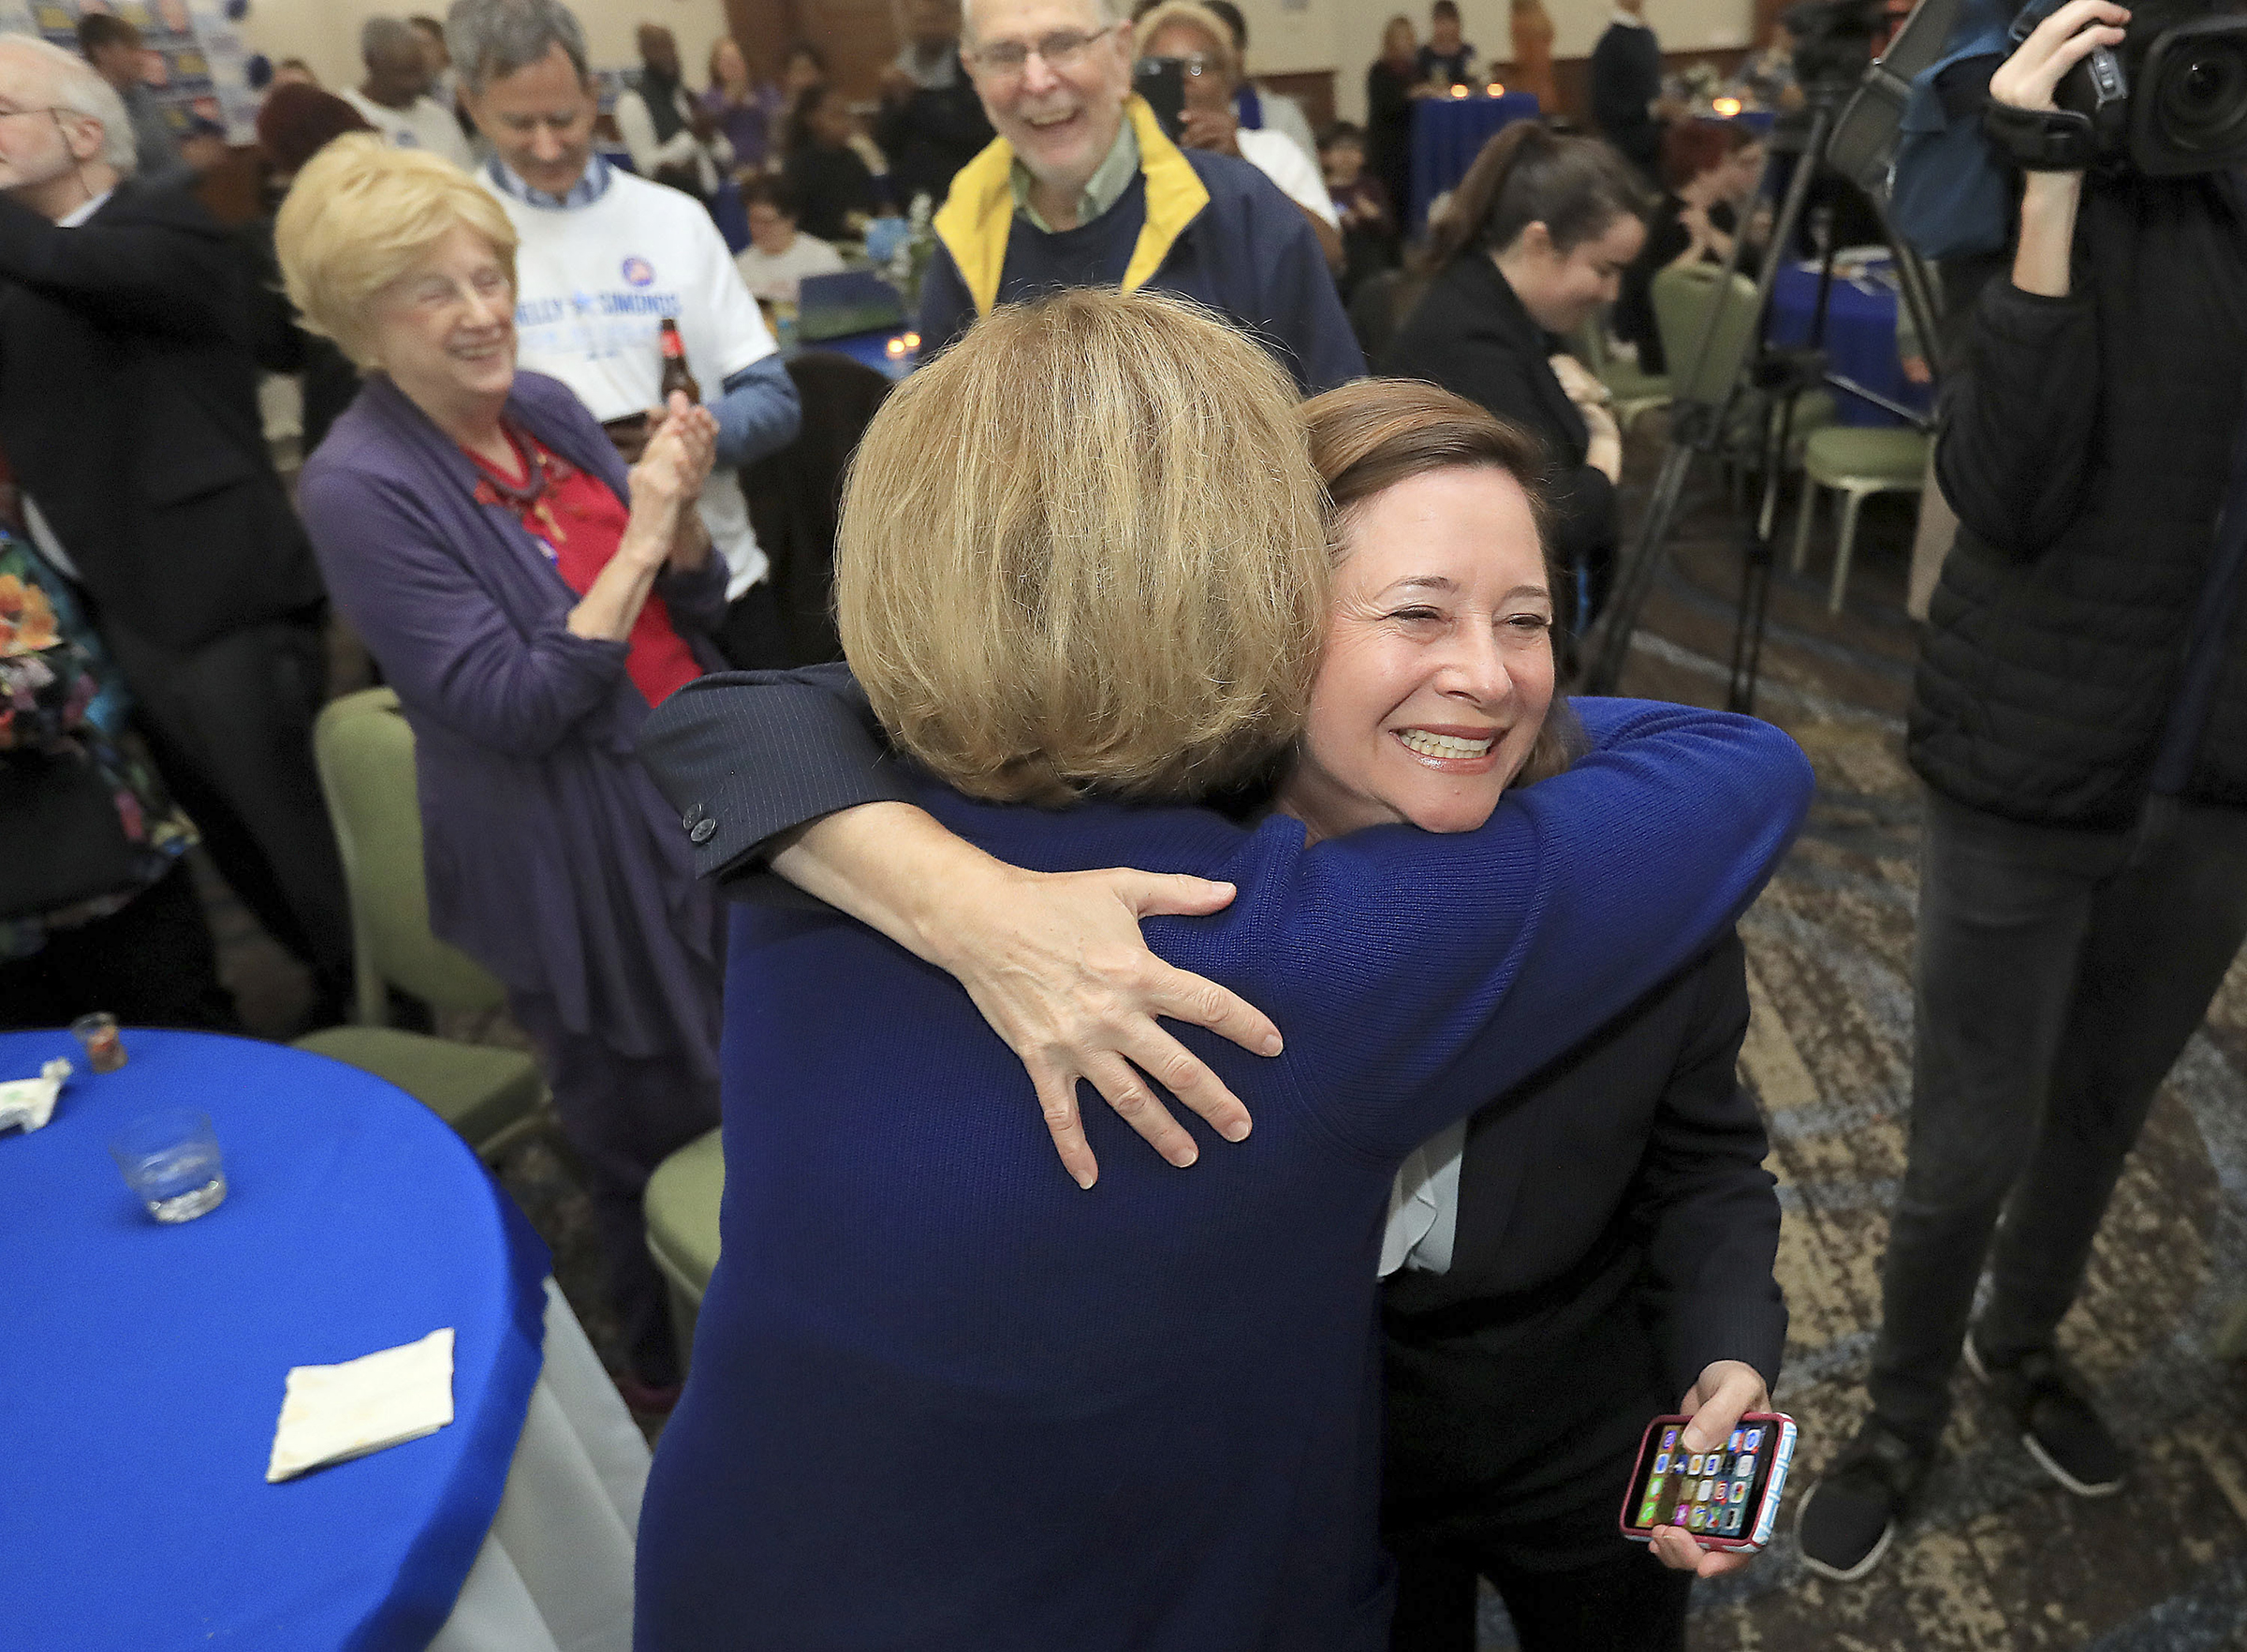 Candidate for the 94th District, Shelly Simonds, celebrates with supporters as election results begin to come in at the Marriott in Newport News, Va. on Nov. 5, 2019.